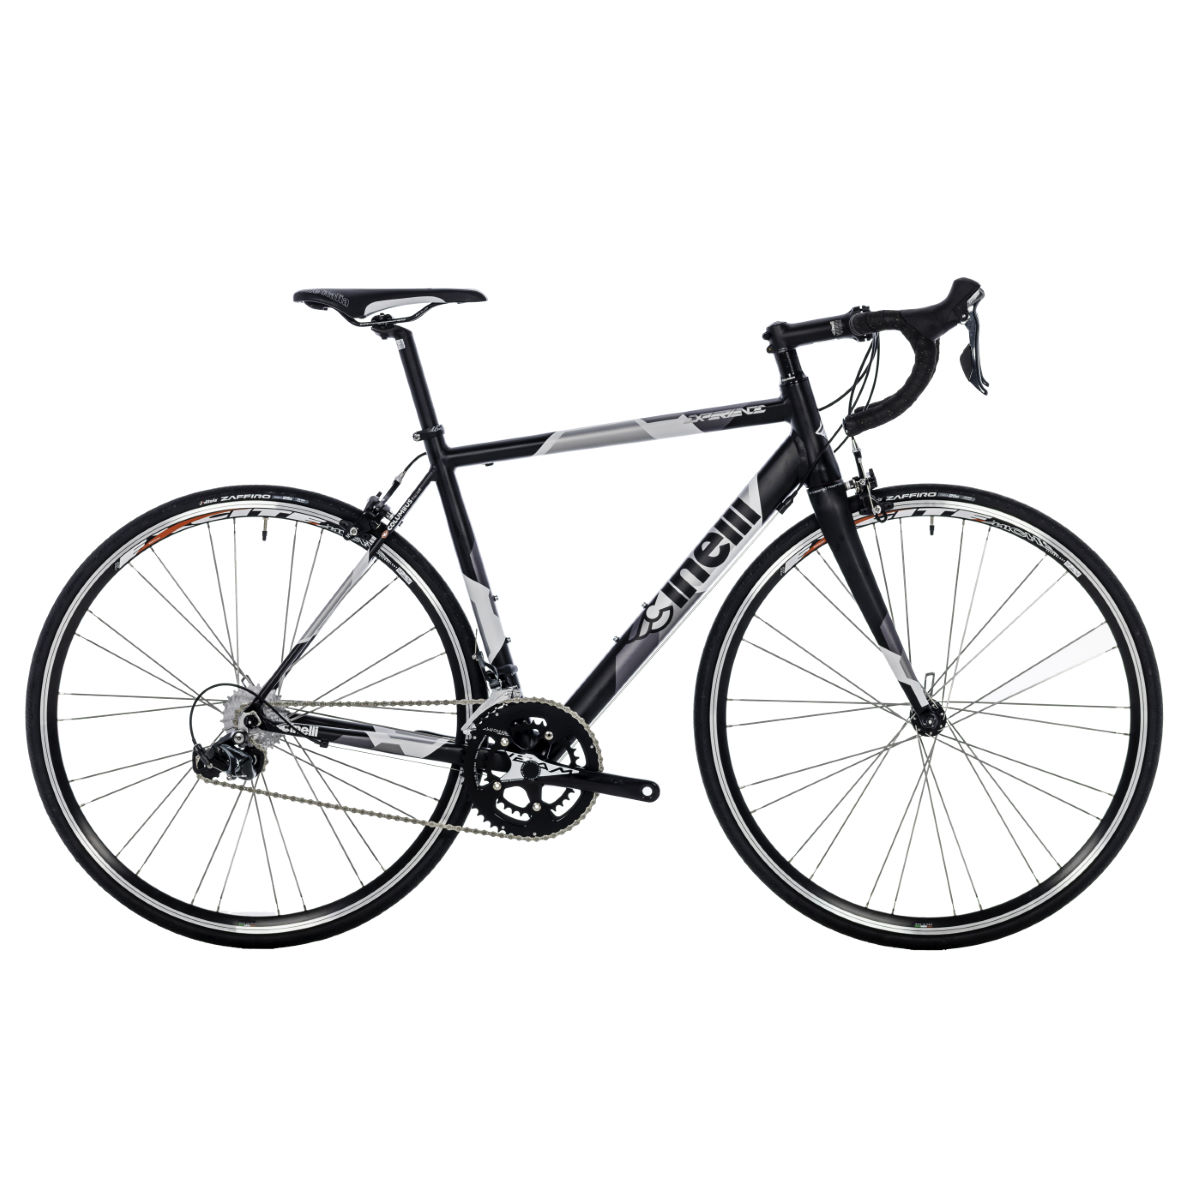 Cinelli Experience (Tiagra - 2016) - Medium Black / White | Road Bikes